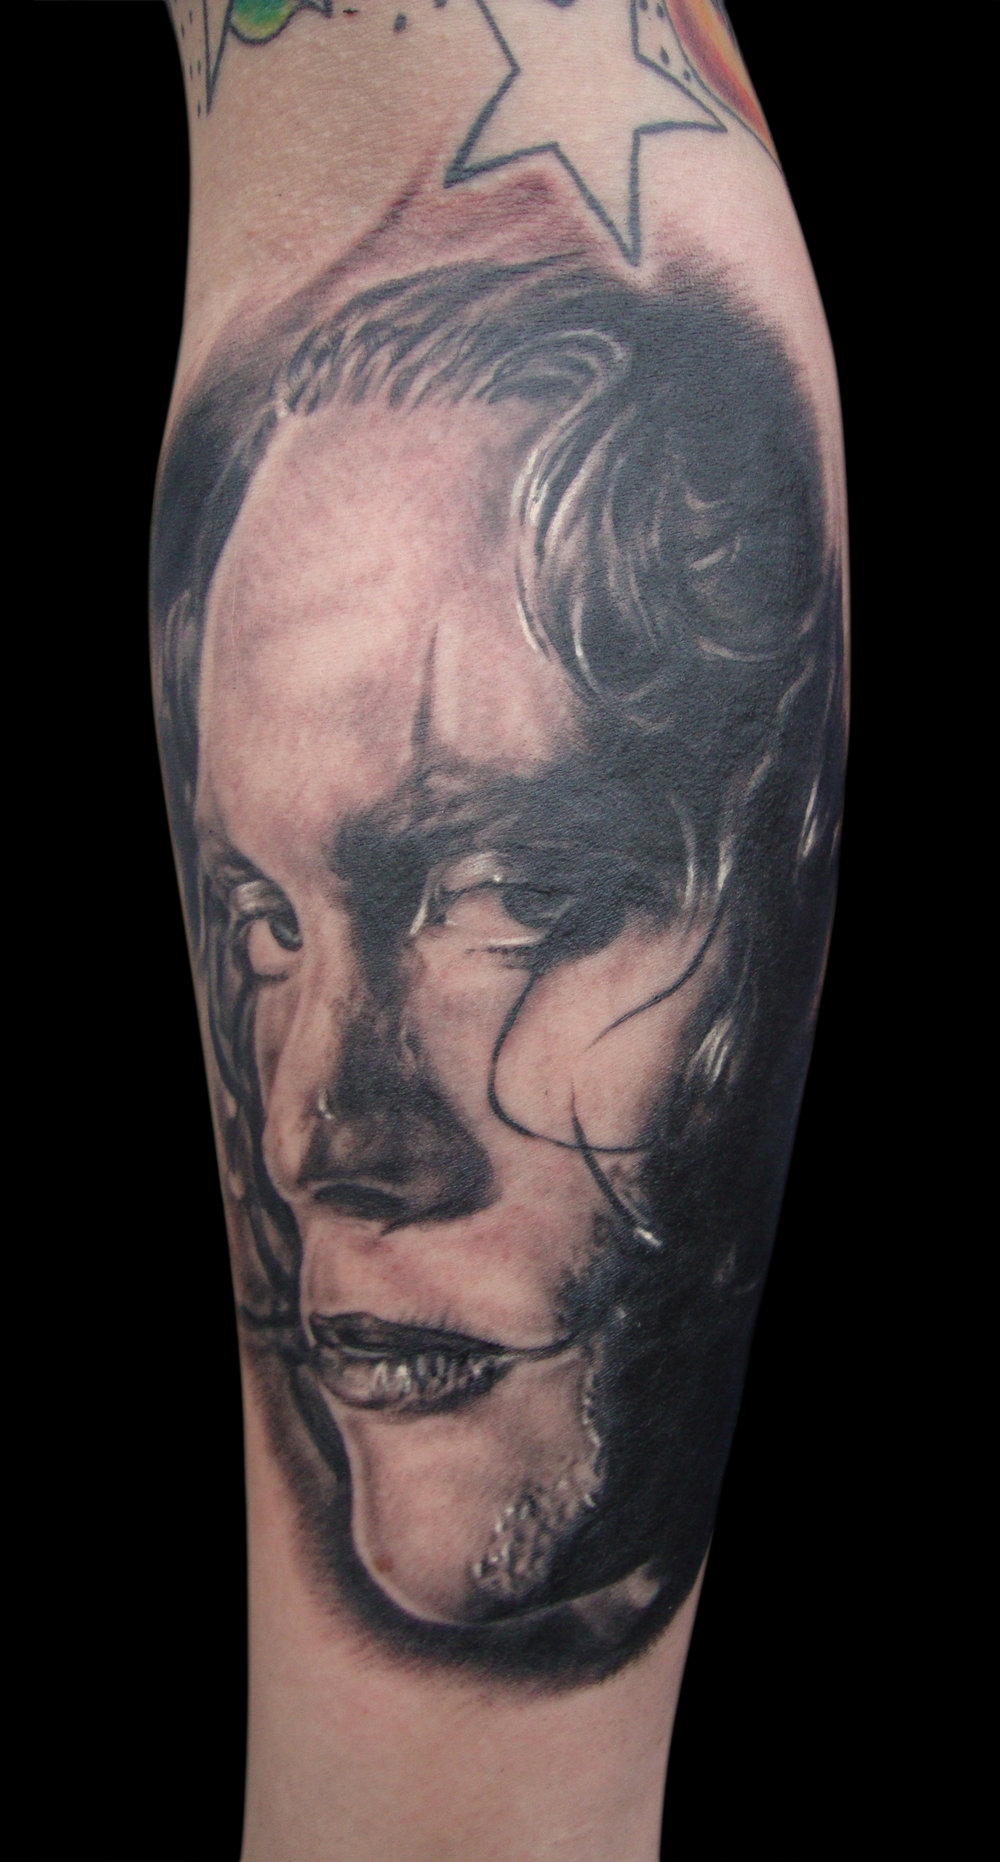 Black and Grey Brandon Lee as The Crow Portrait Tattoo, (fresh)